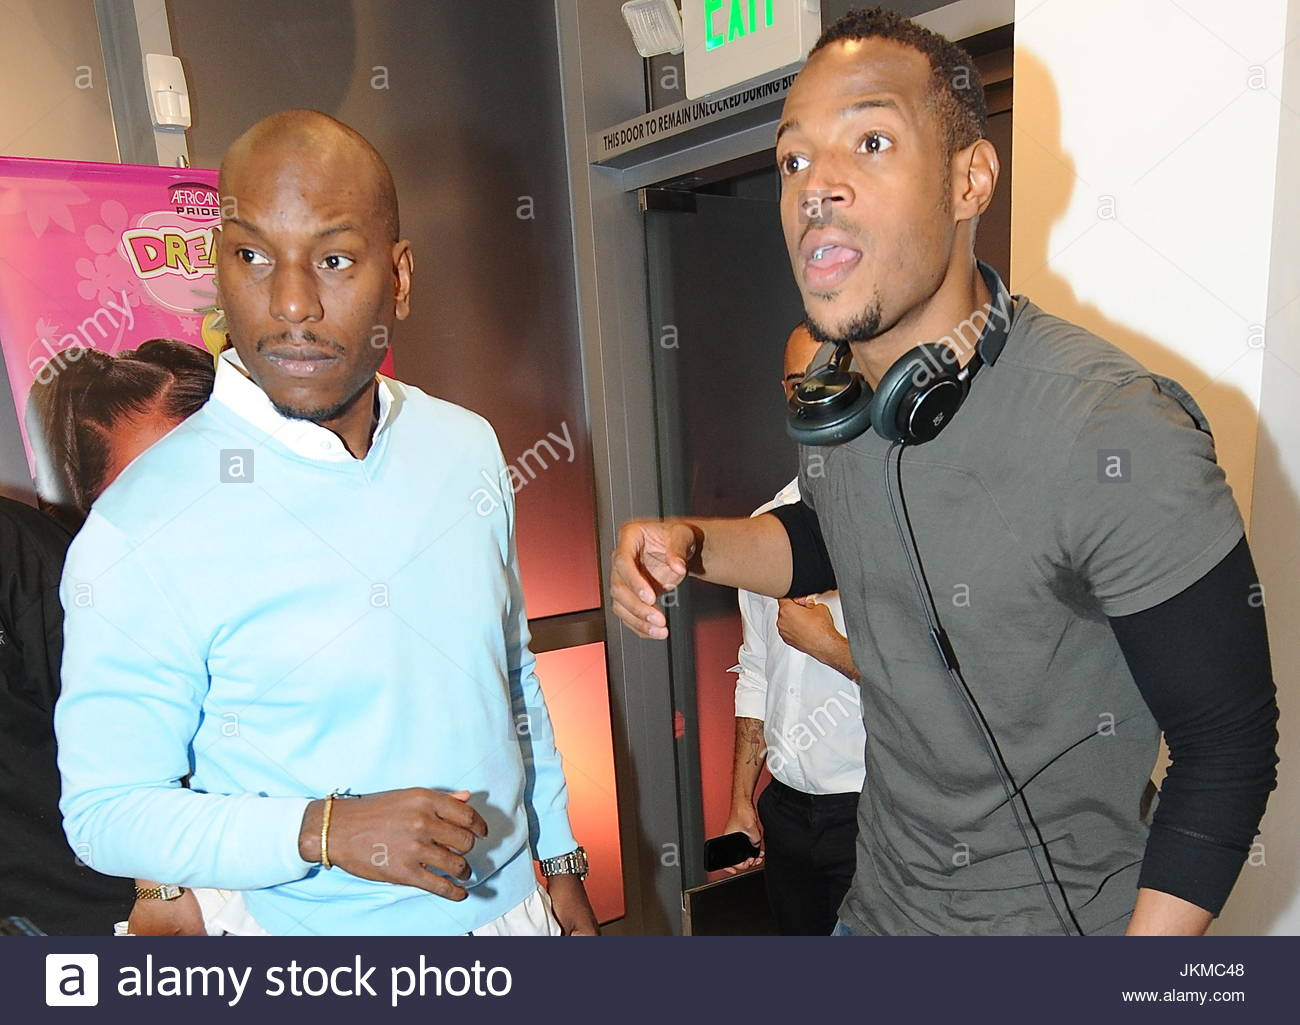 Vanessa Simmons And Her Boyfriend Mike Wayans Baby Shower At Sugar Factory,  The Attendees Were As Follows Russell Simmon, Rev Run And Wife Justine,  Angela ...